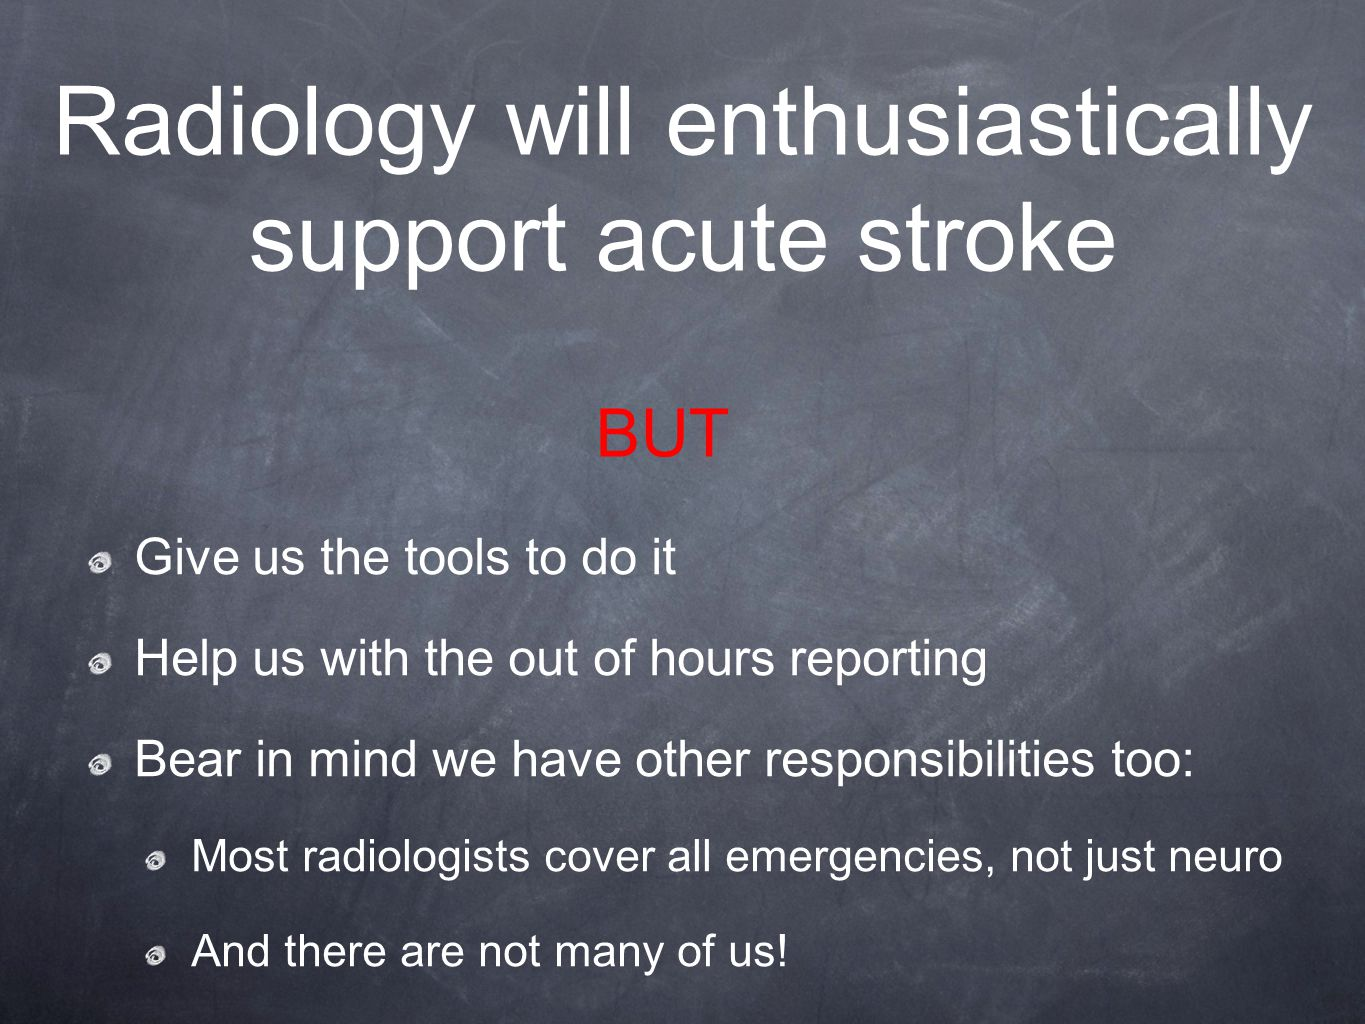 Radiology will enthusiastically support acute stroke Give us the tools to do it Help us with the out of hours reporting Bear in mind we have other responsibilities too: Most radiologists cover all emergencies, not just neuro And there are not many of us.